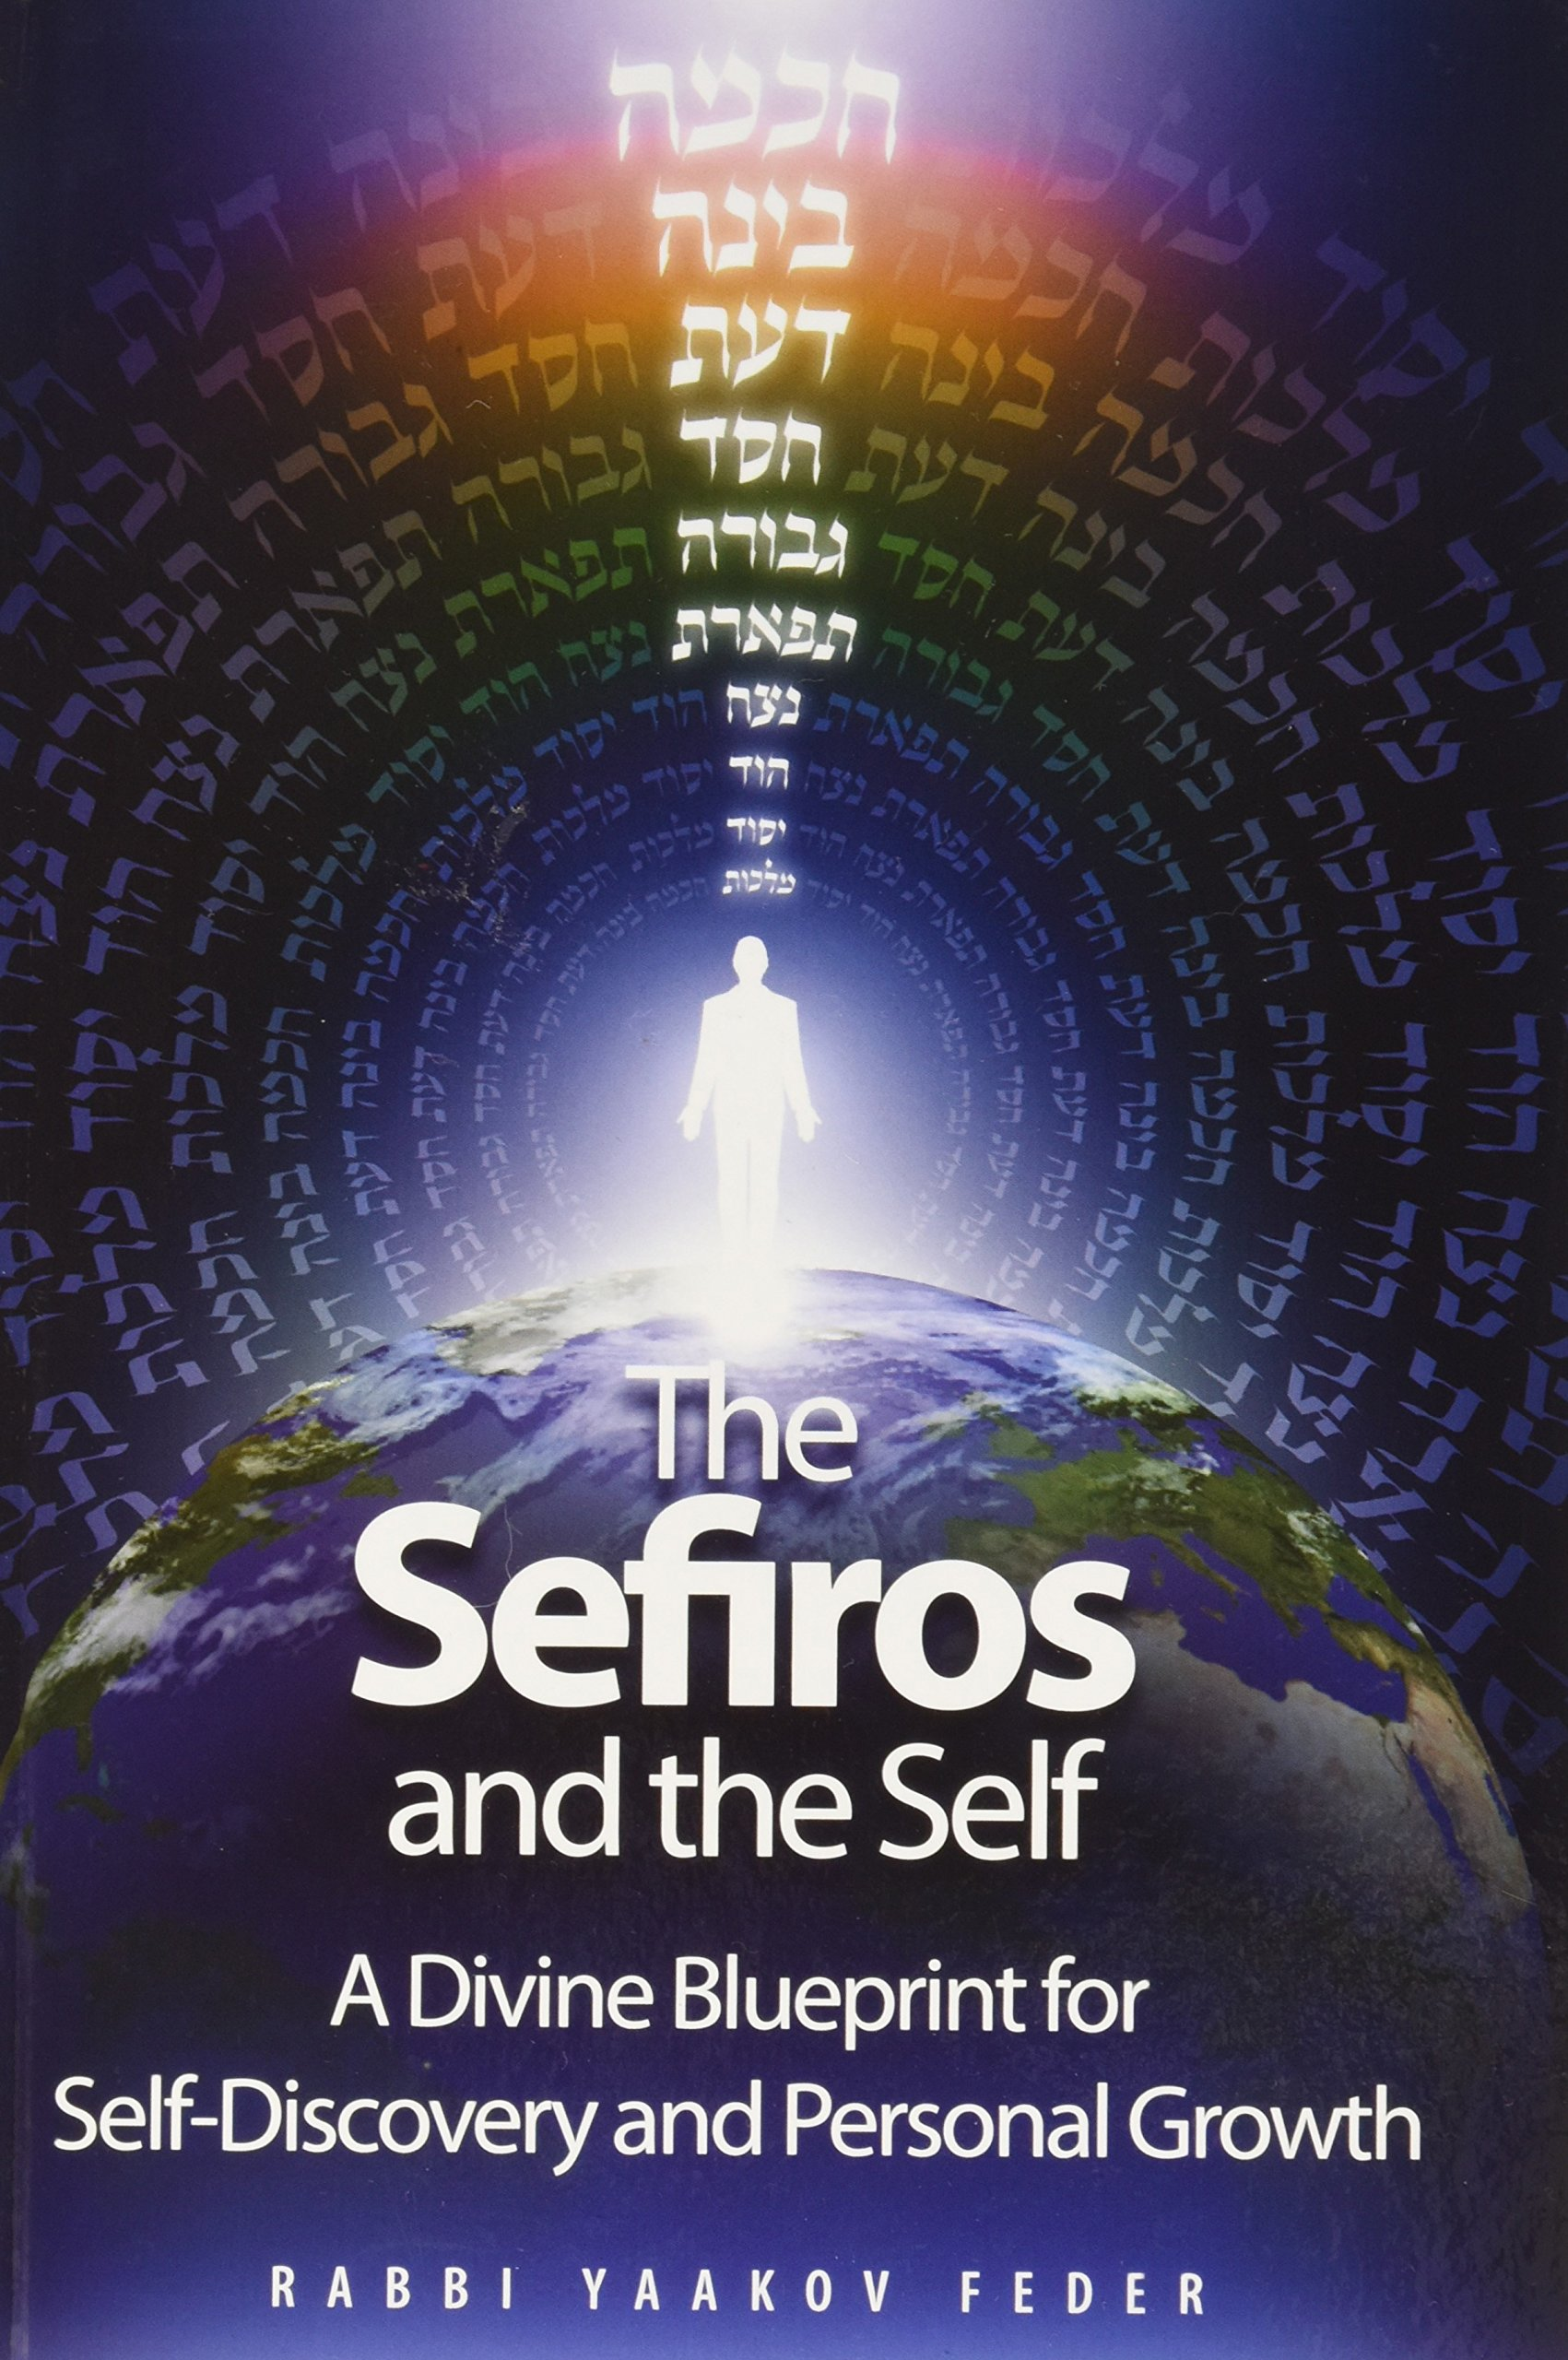 The sefiros and the self a divine blueprint for self discovery and the sefiros and the self a divine blueprint for self discovery and personal growth rabbi yaakov feder 9781680252255 amazon books malvernweather